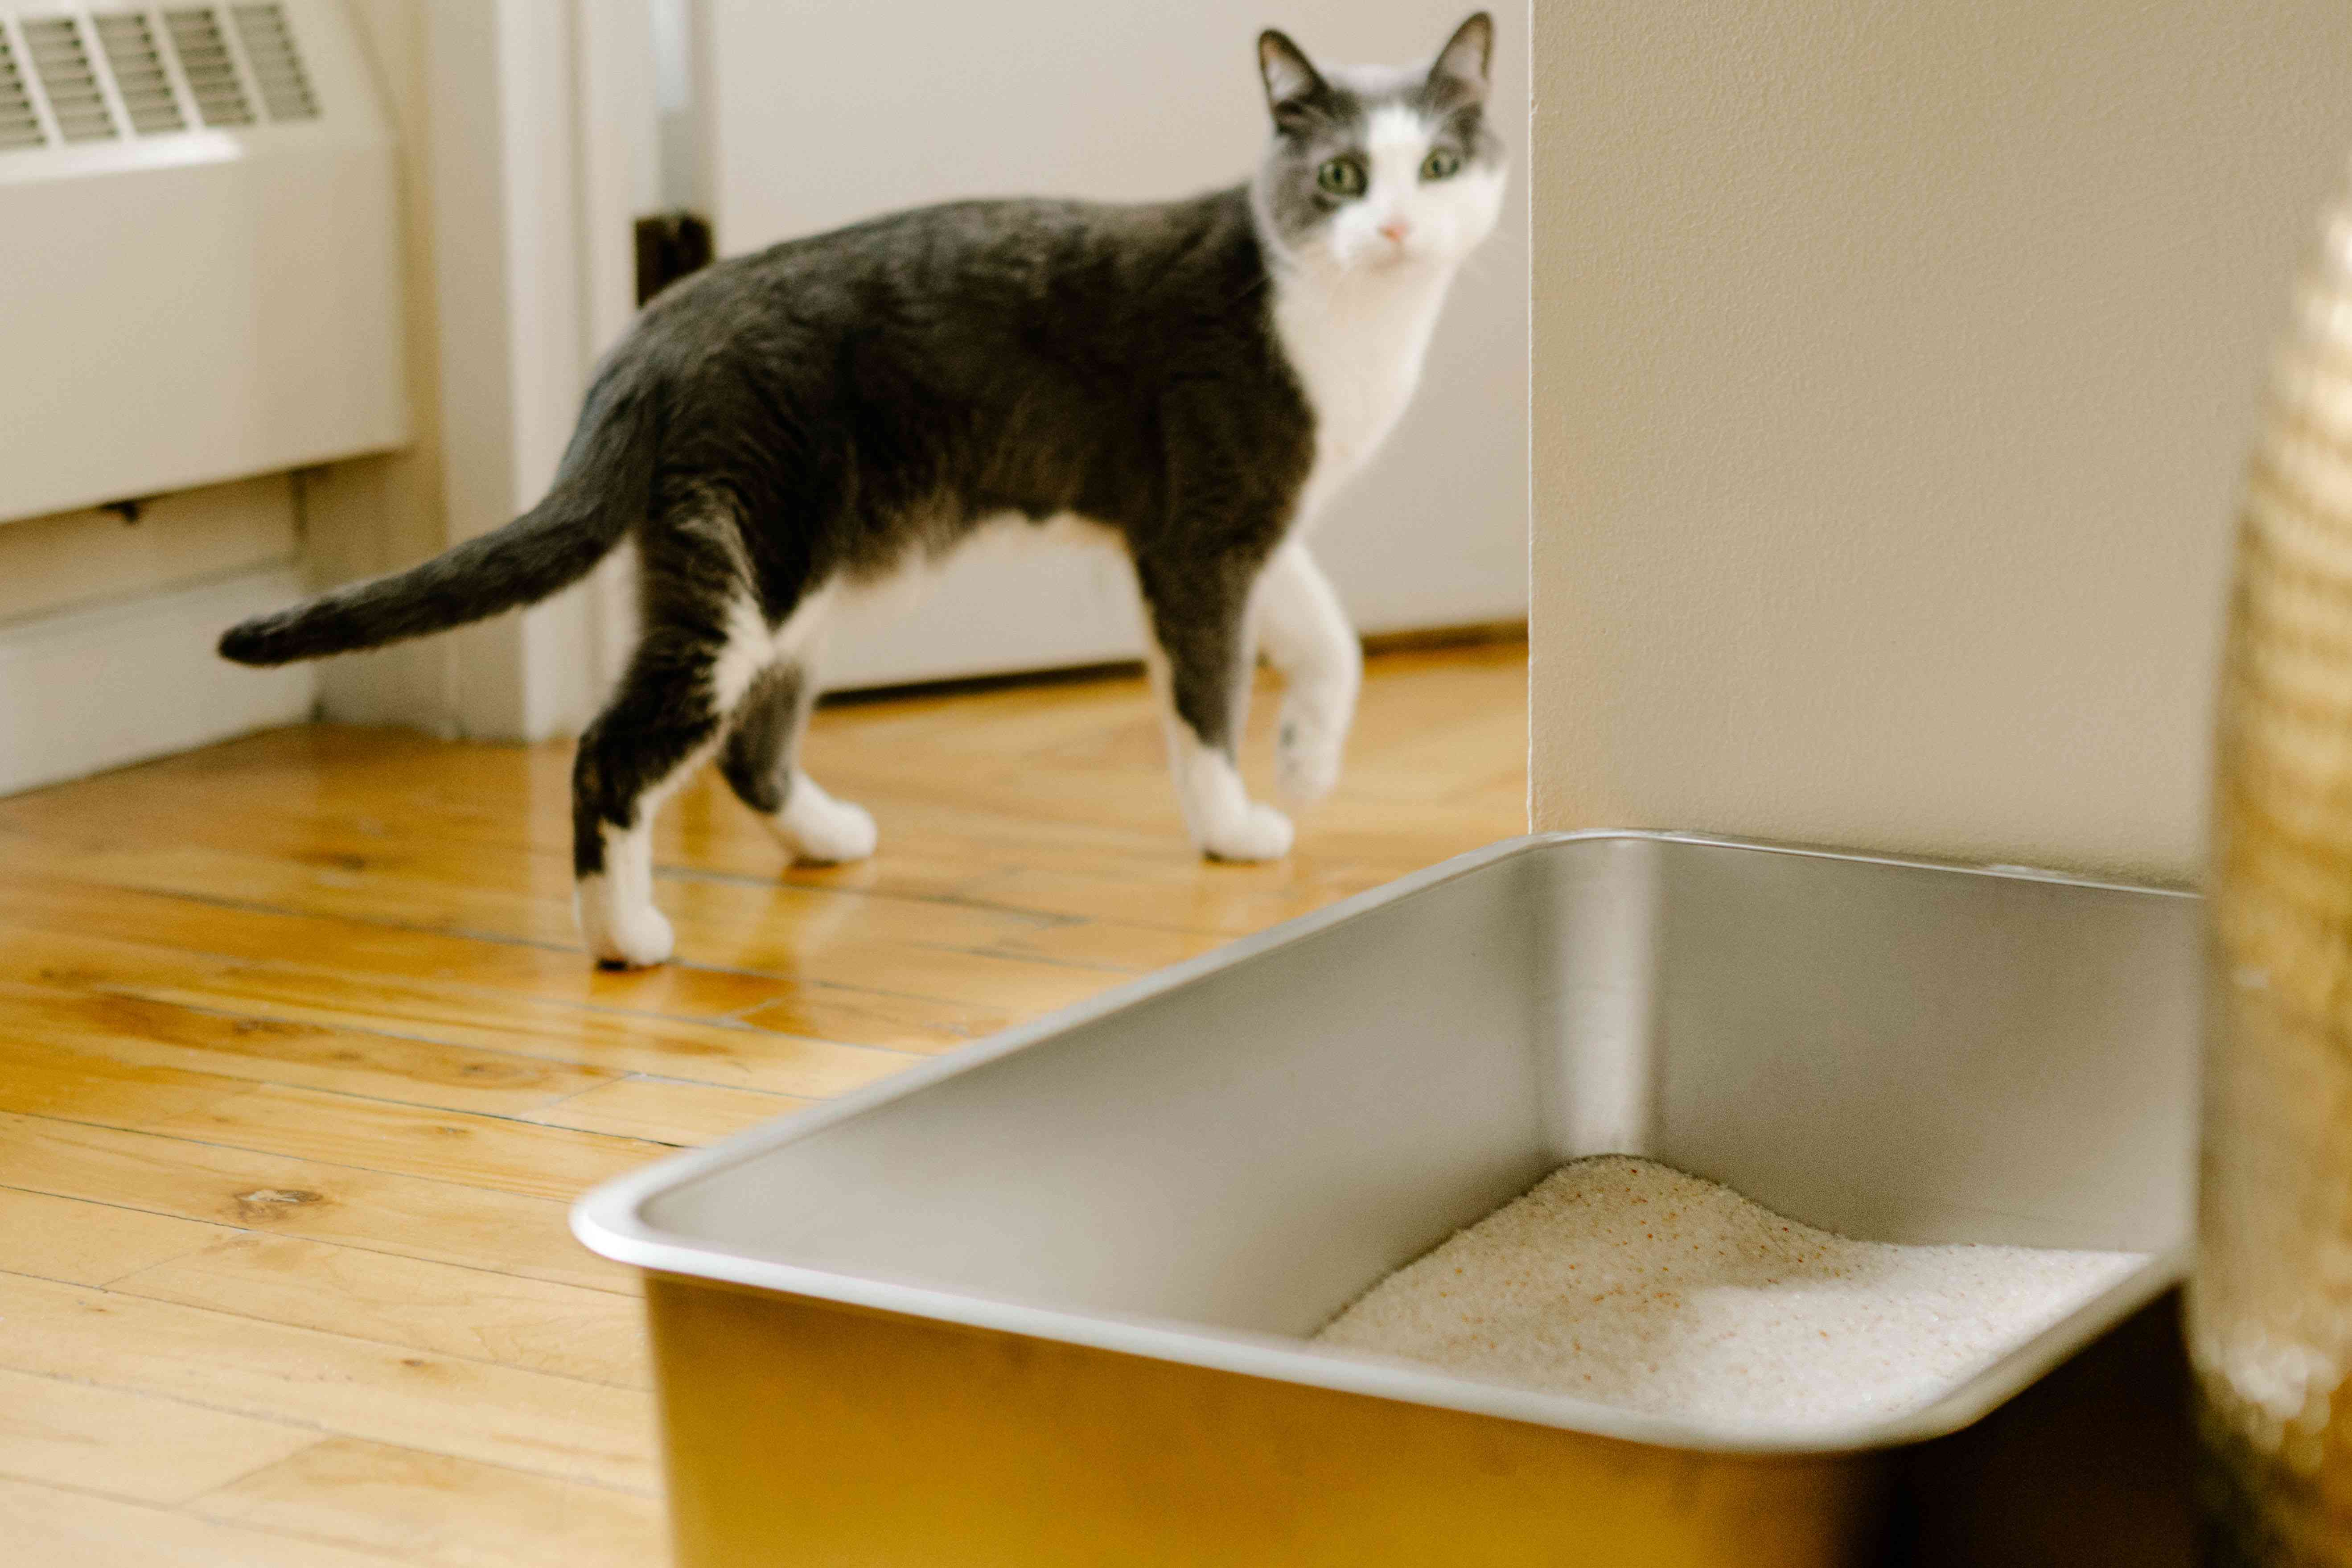 kitty walks past a stainless steel litter box and pauses to look back